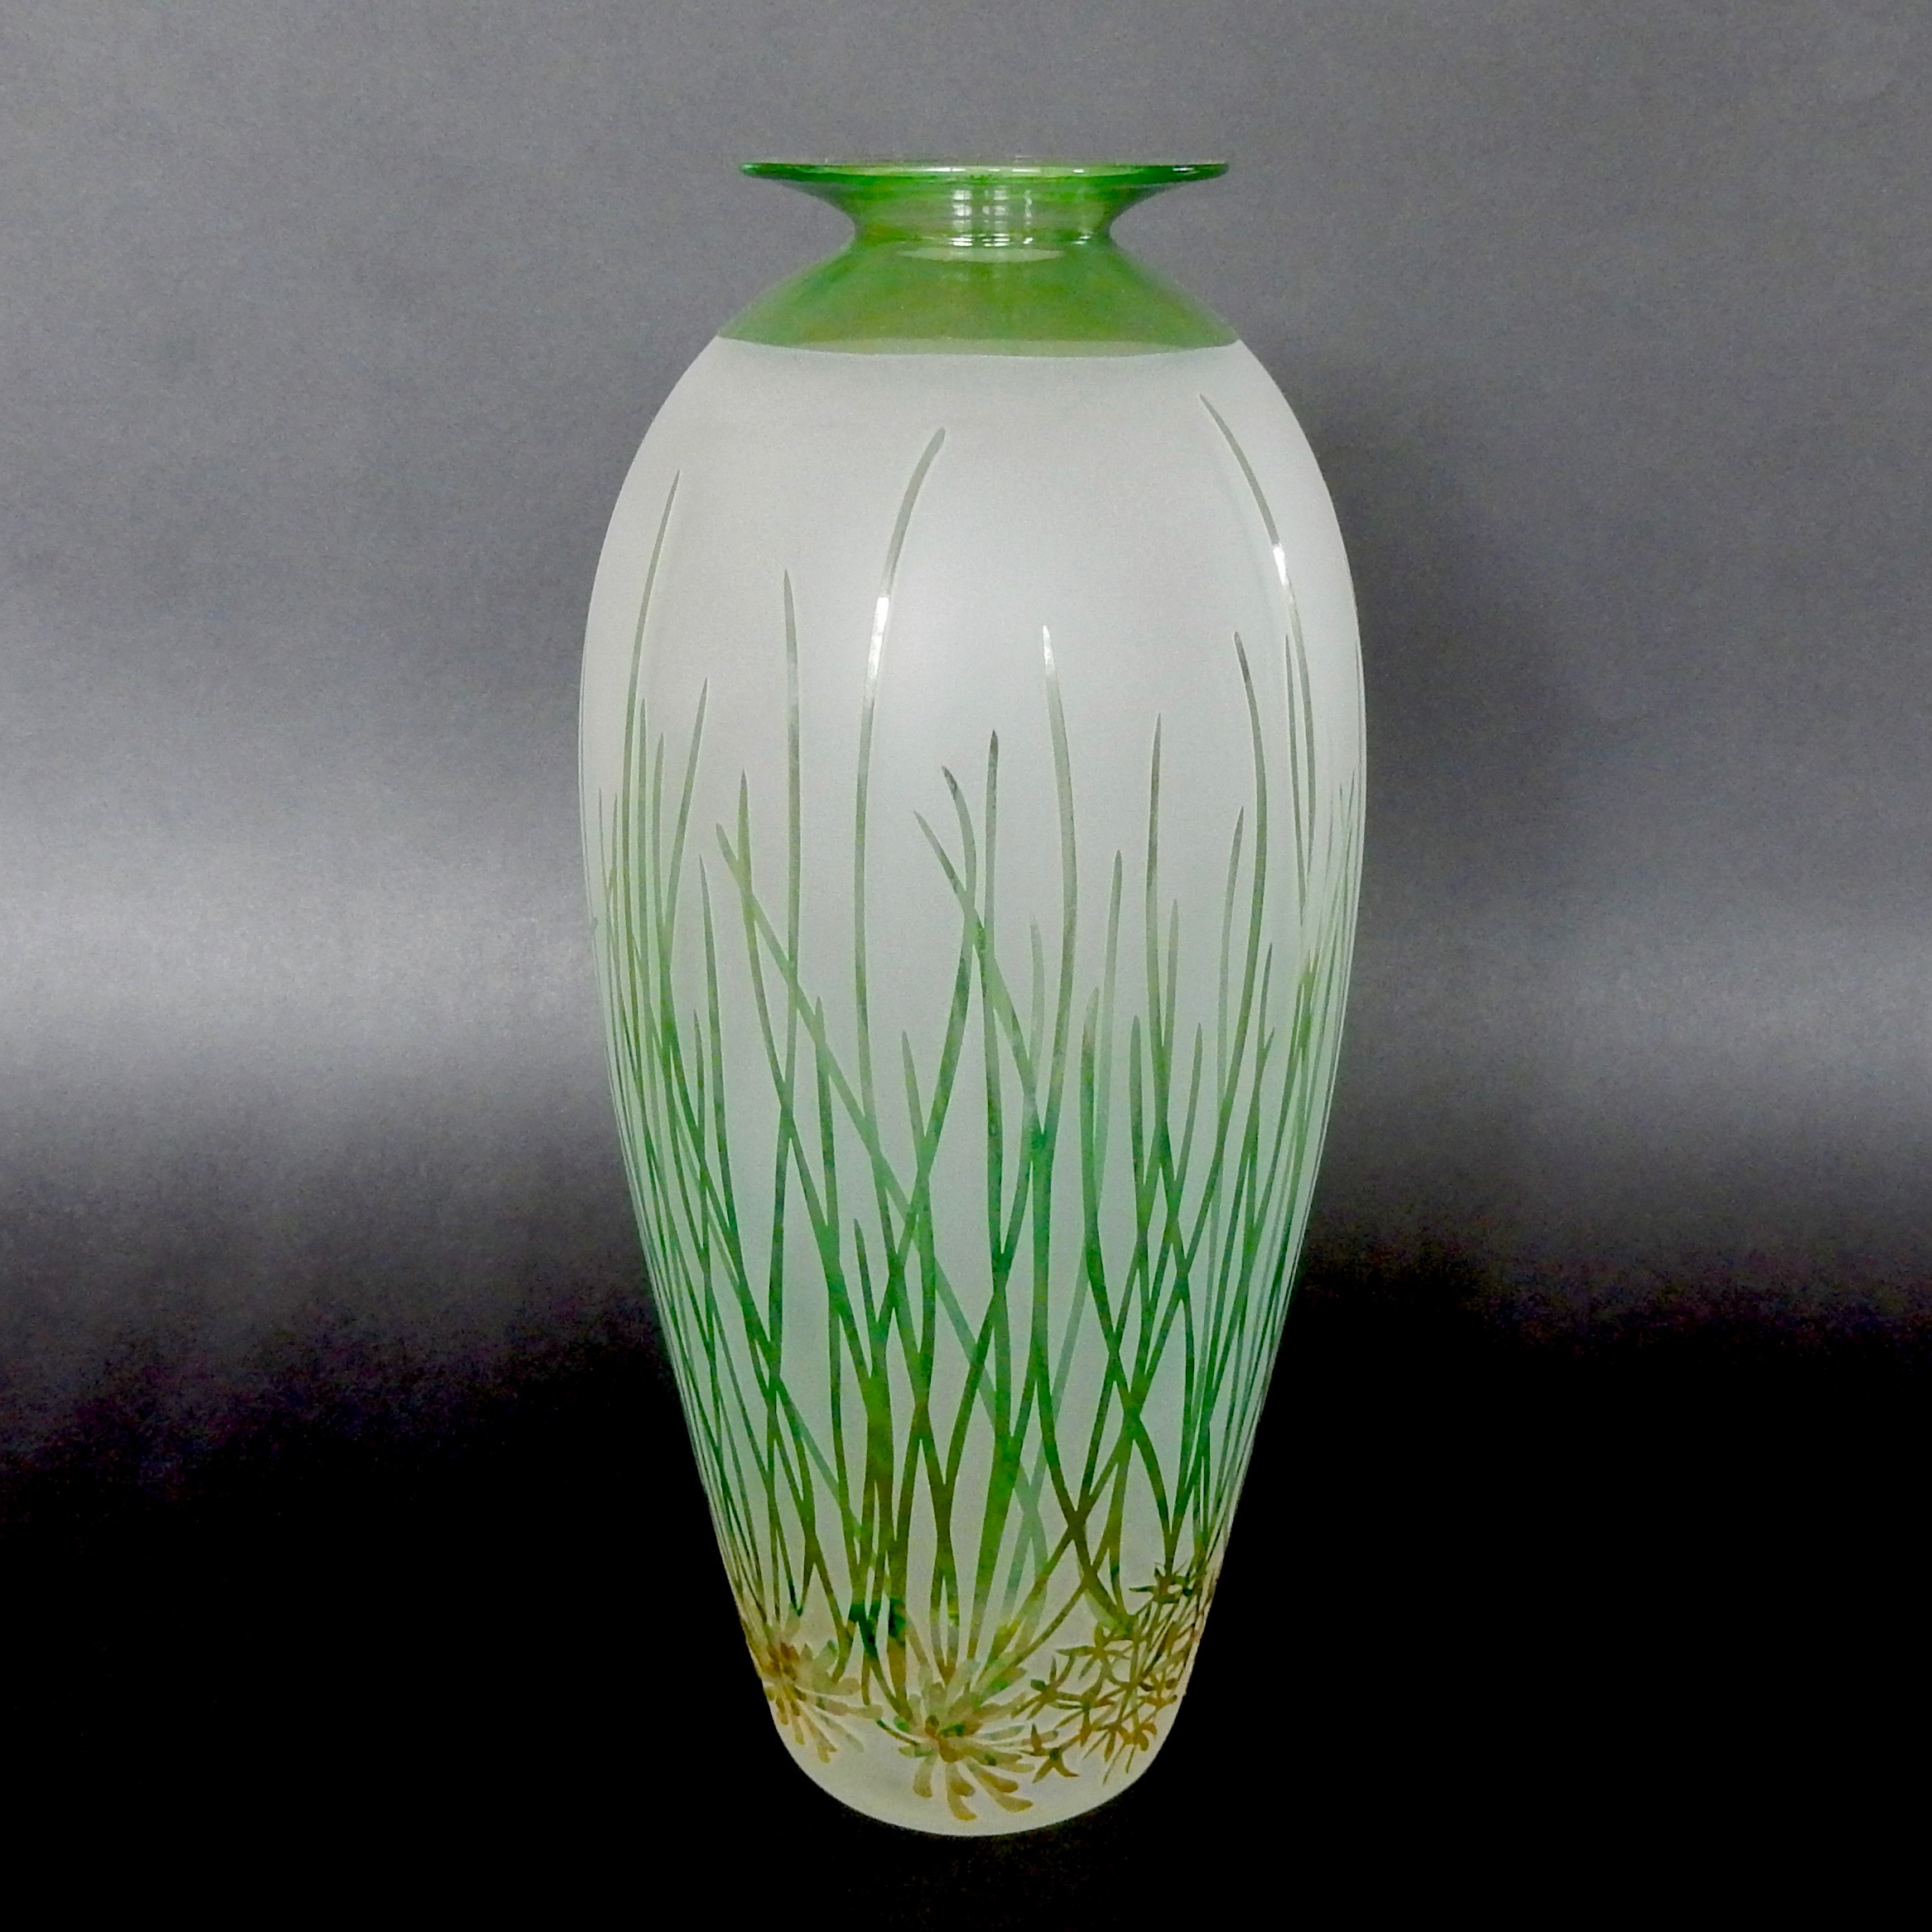 Petrophile longifolia vase by Amanda Louden. Blown and etched glass, H 285cm x W 155cm